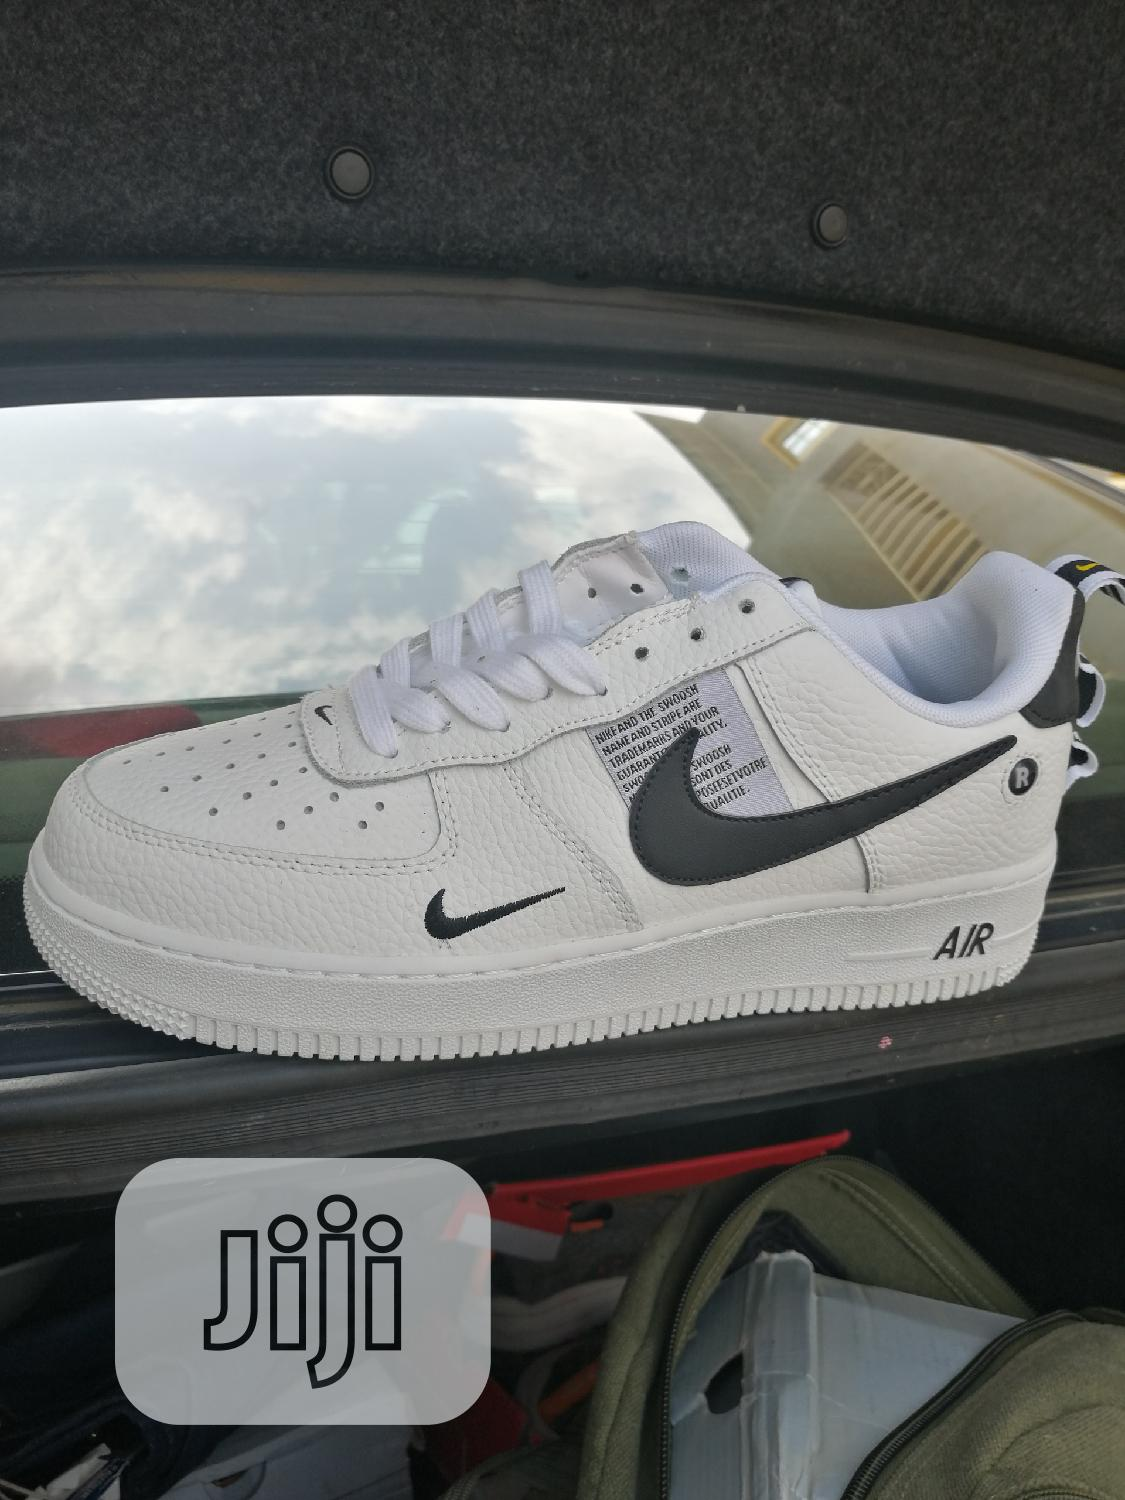 Top Quality and Luxury Sneakers. Nike Airforce 1 | Shoes for sale in Dutse-Alhaji, Abuja (FCT) State, Nigeria